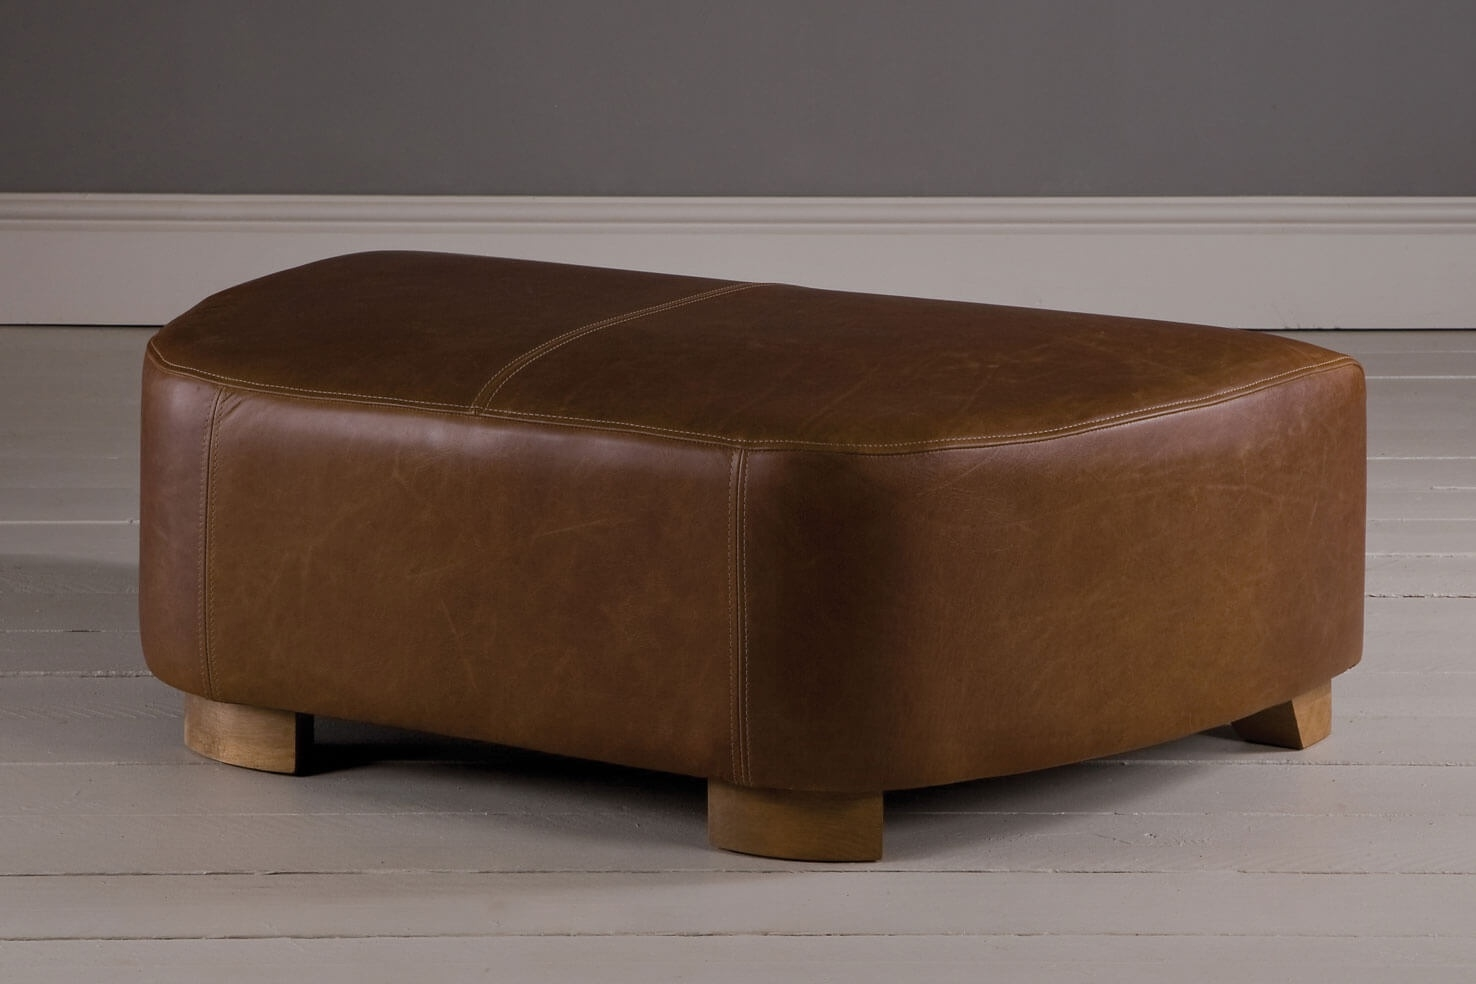 Snuggler Leather Footstool Handcrafted Indigo Furniture Throughout Leather Footstools (Image 11 of 15)